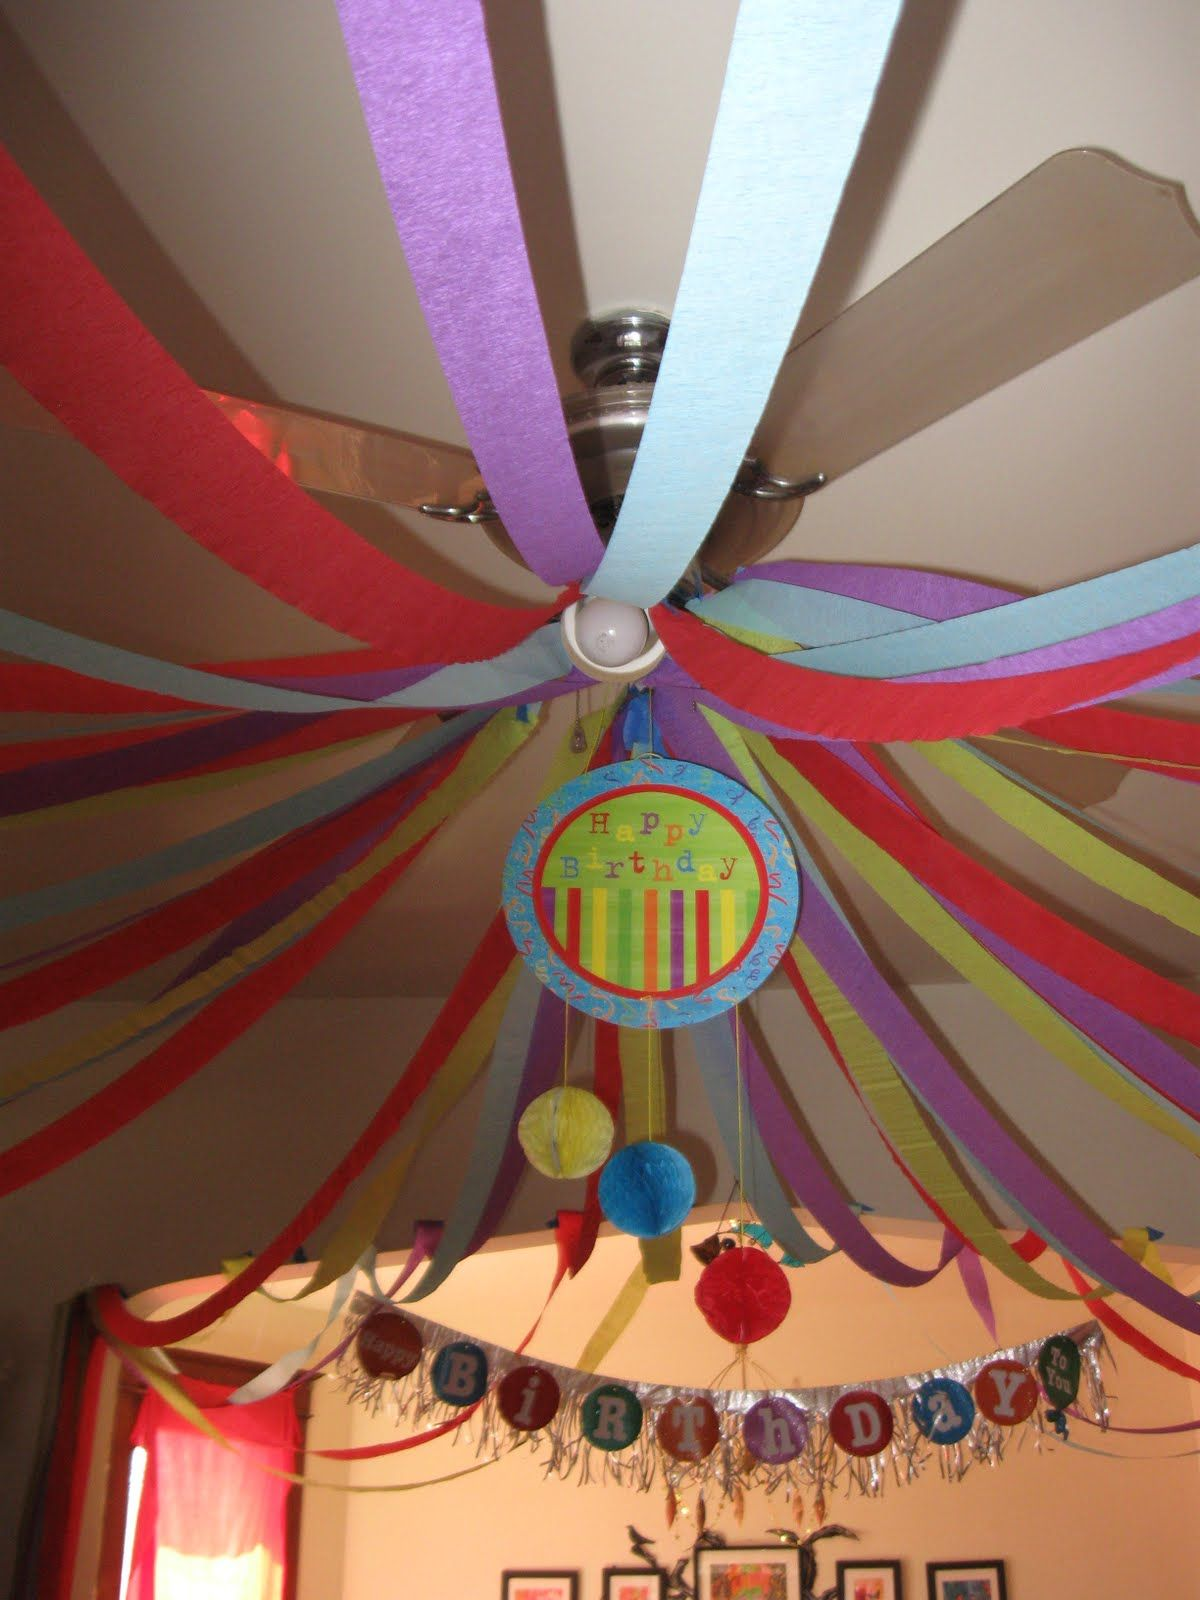 Crepe paper streamers decoration from light fixture fiesta de